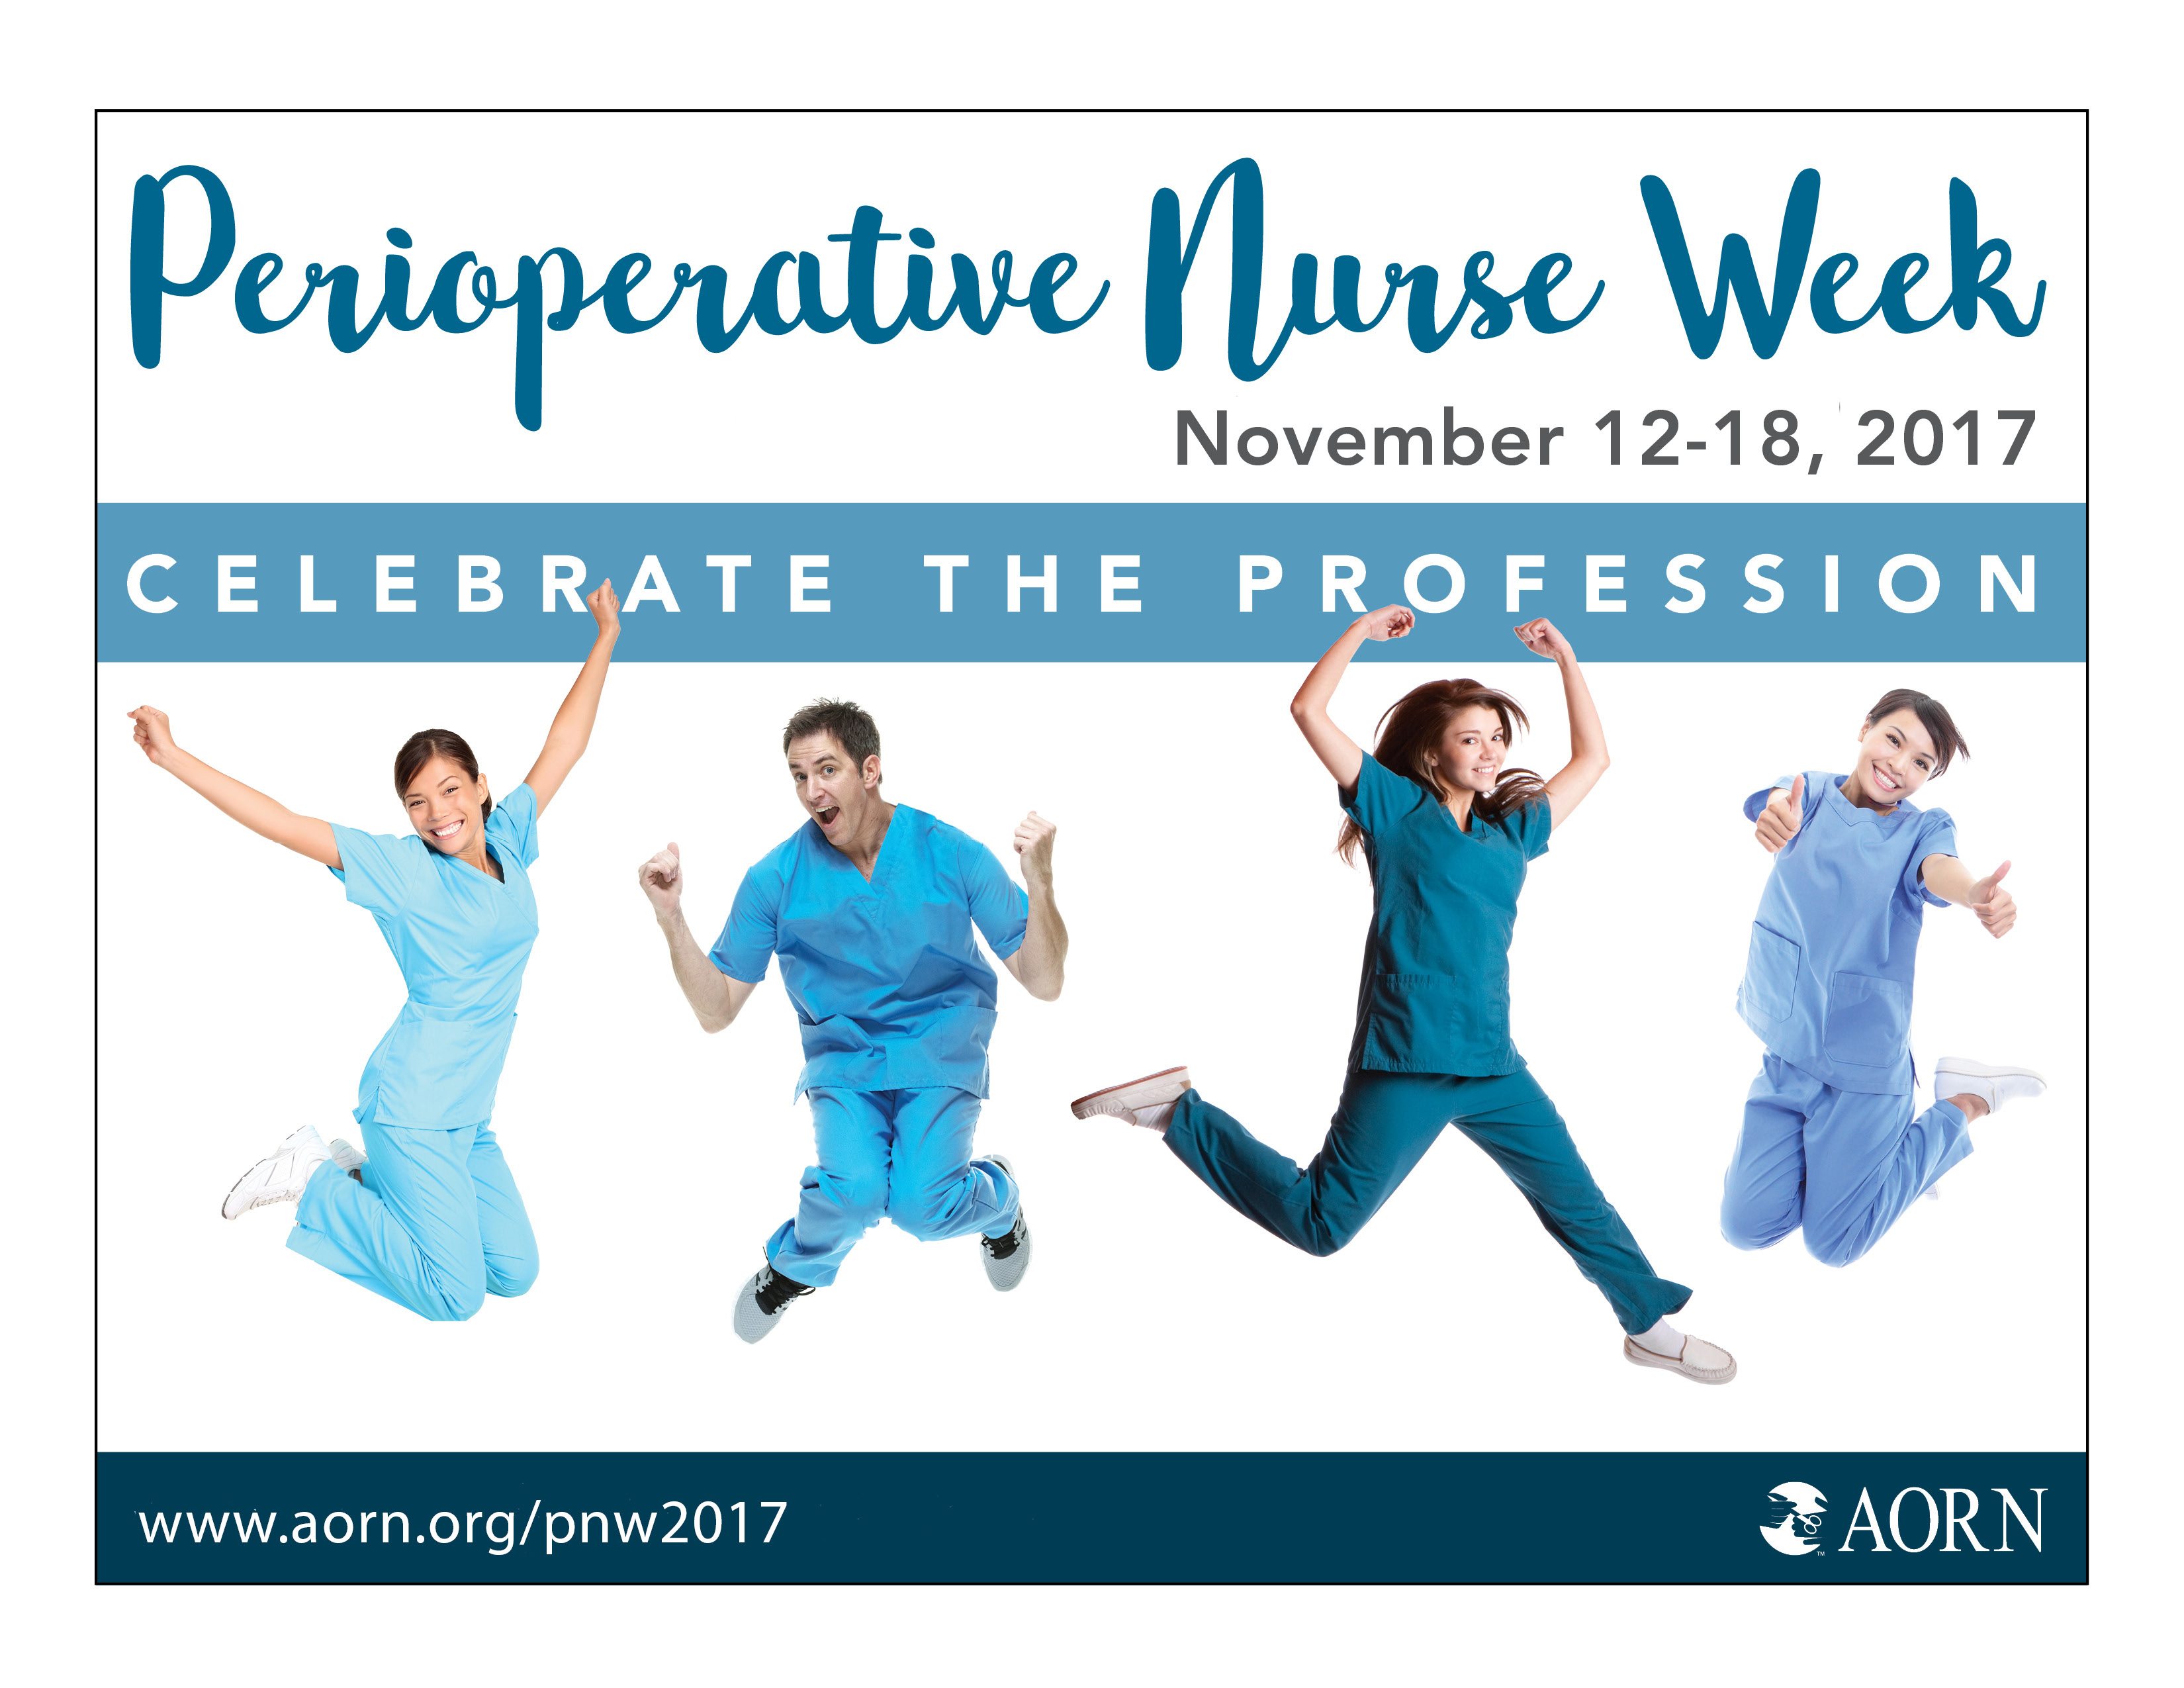 OR Today Joins Perioperative Nurse Week Celebration